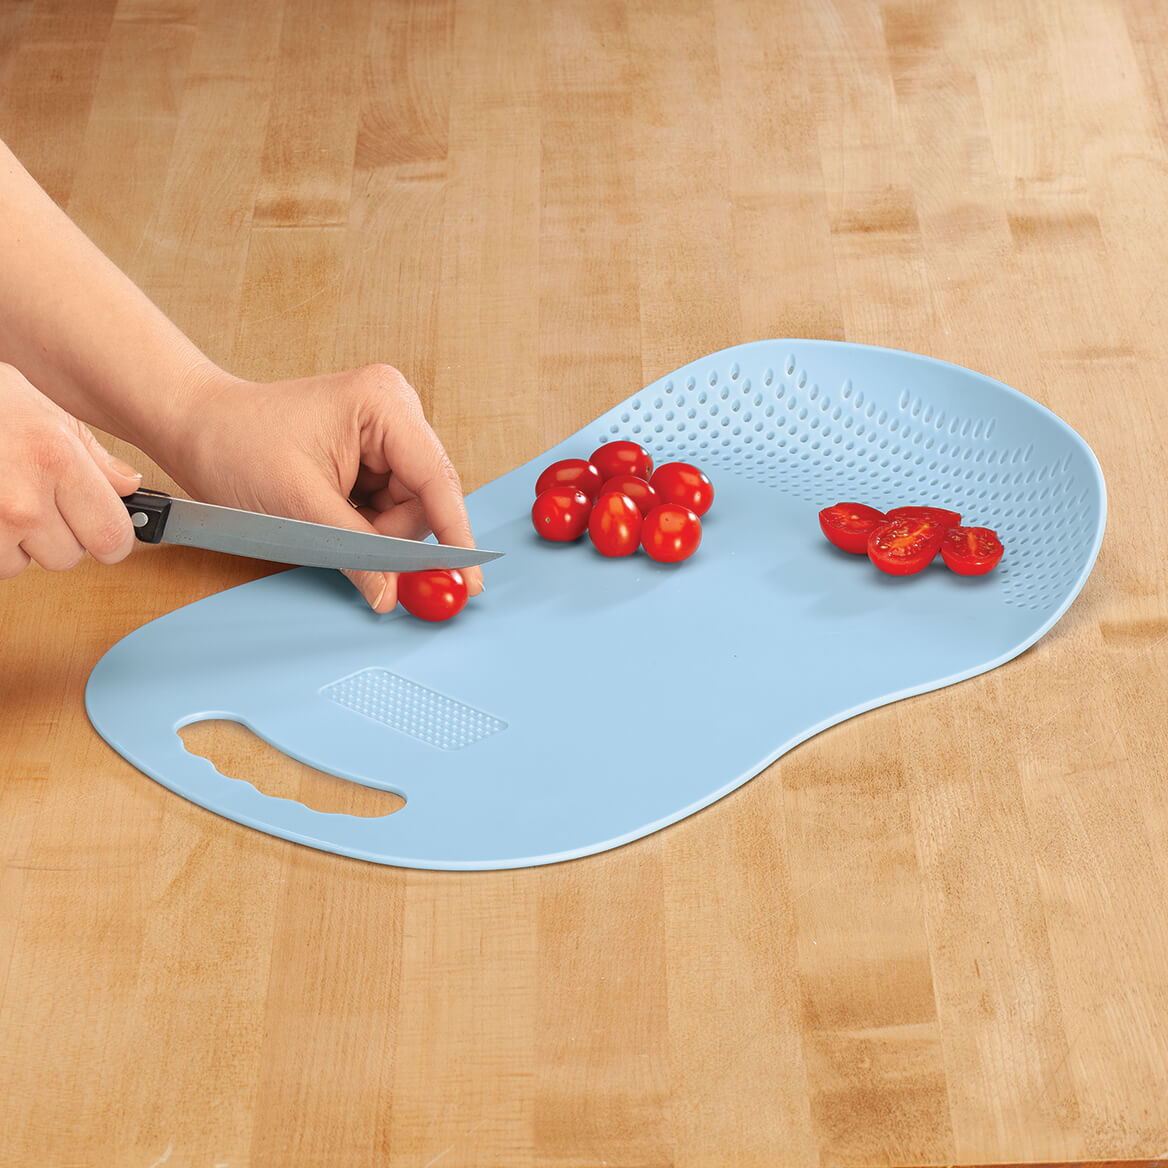 3 in 1 Cutting Board by Chef's Pride-370580